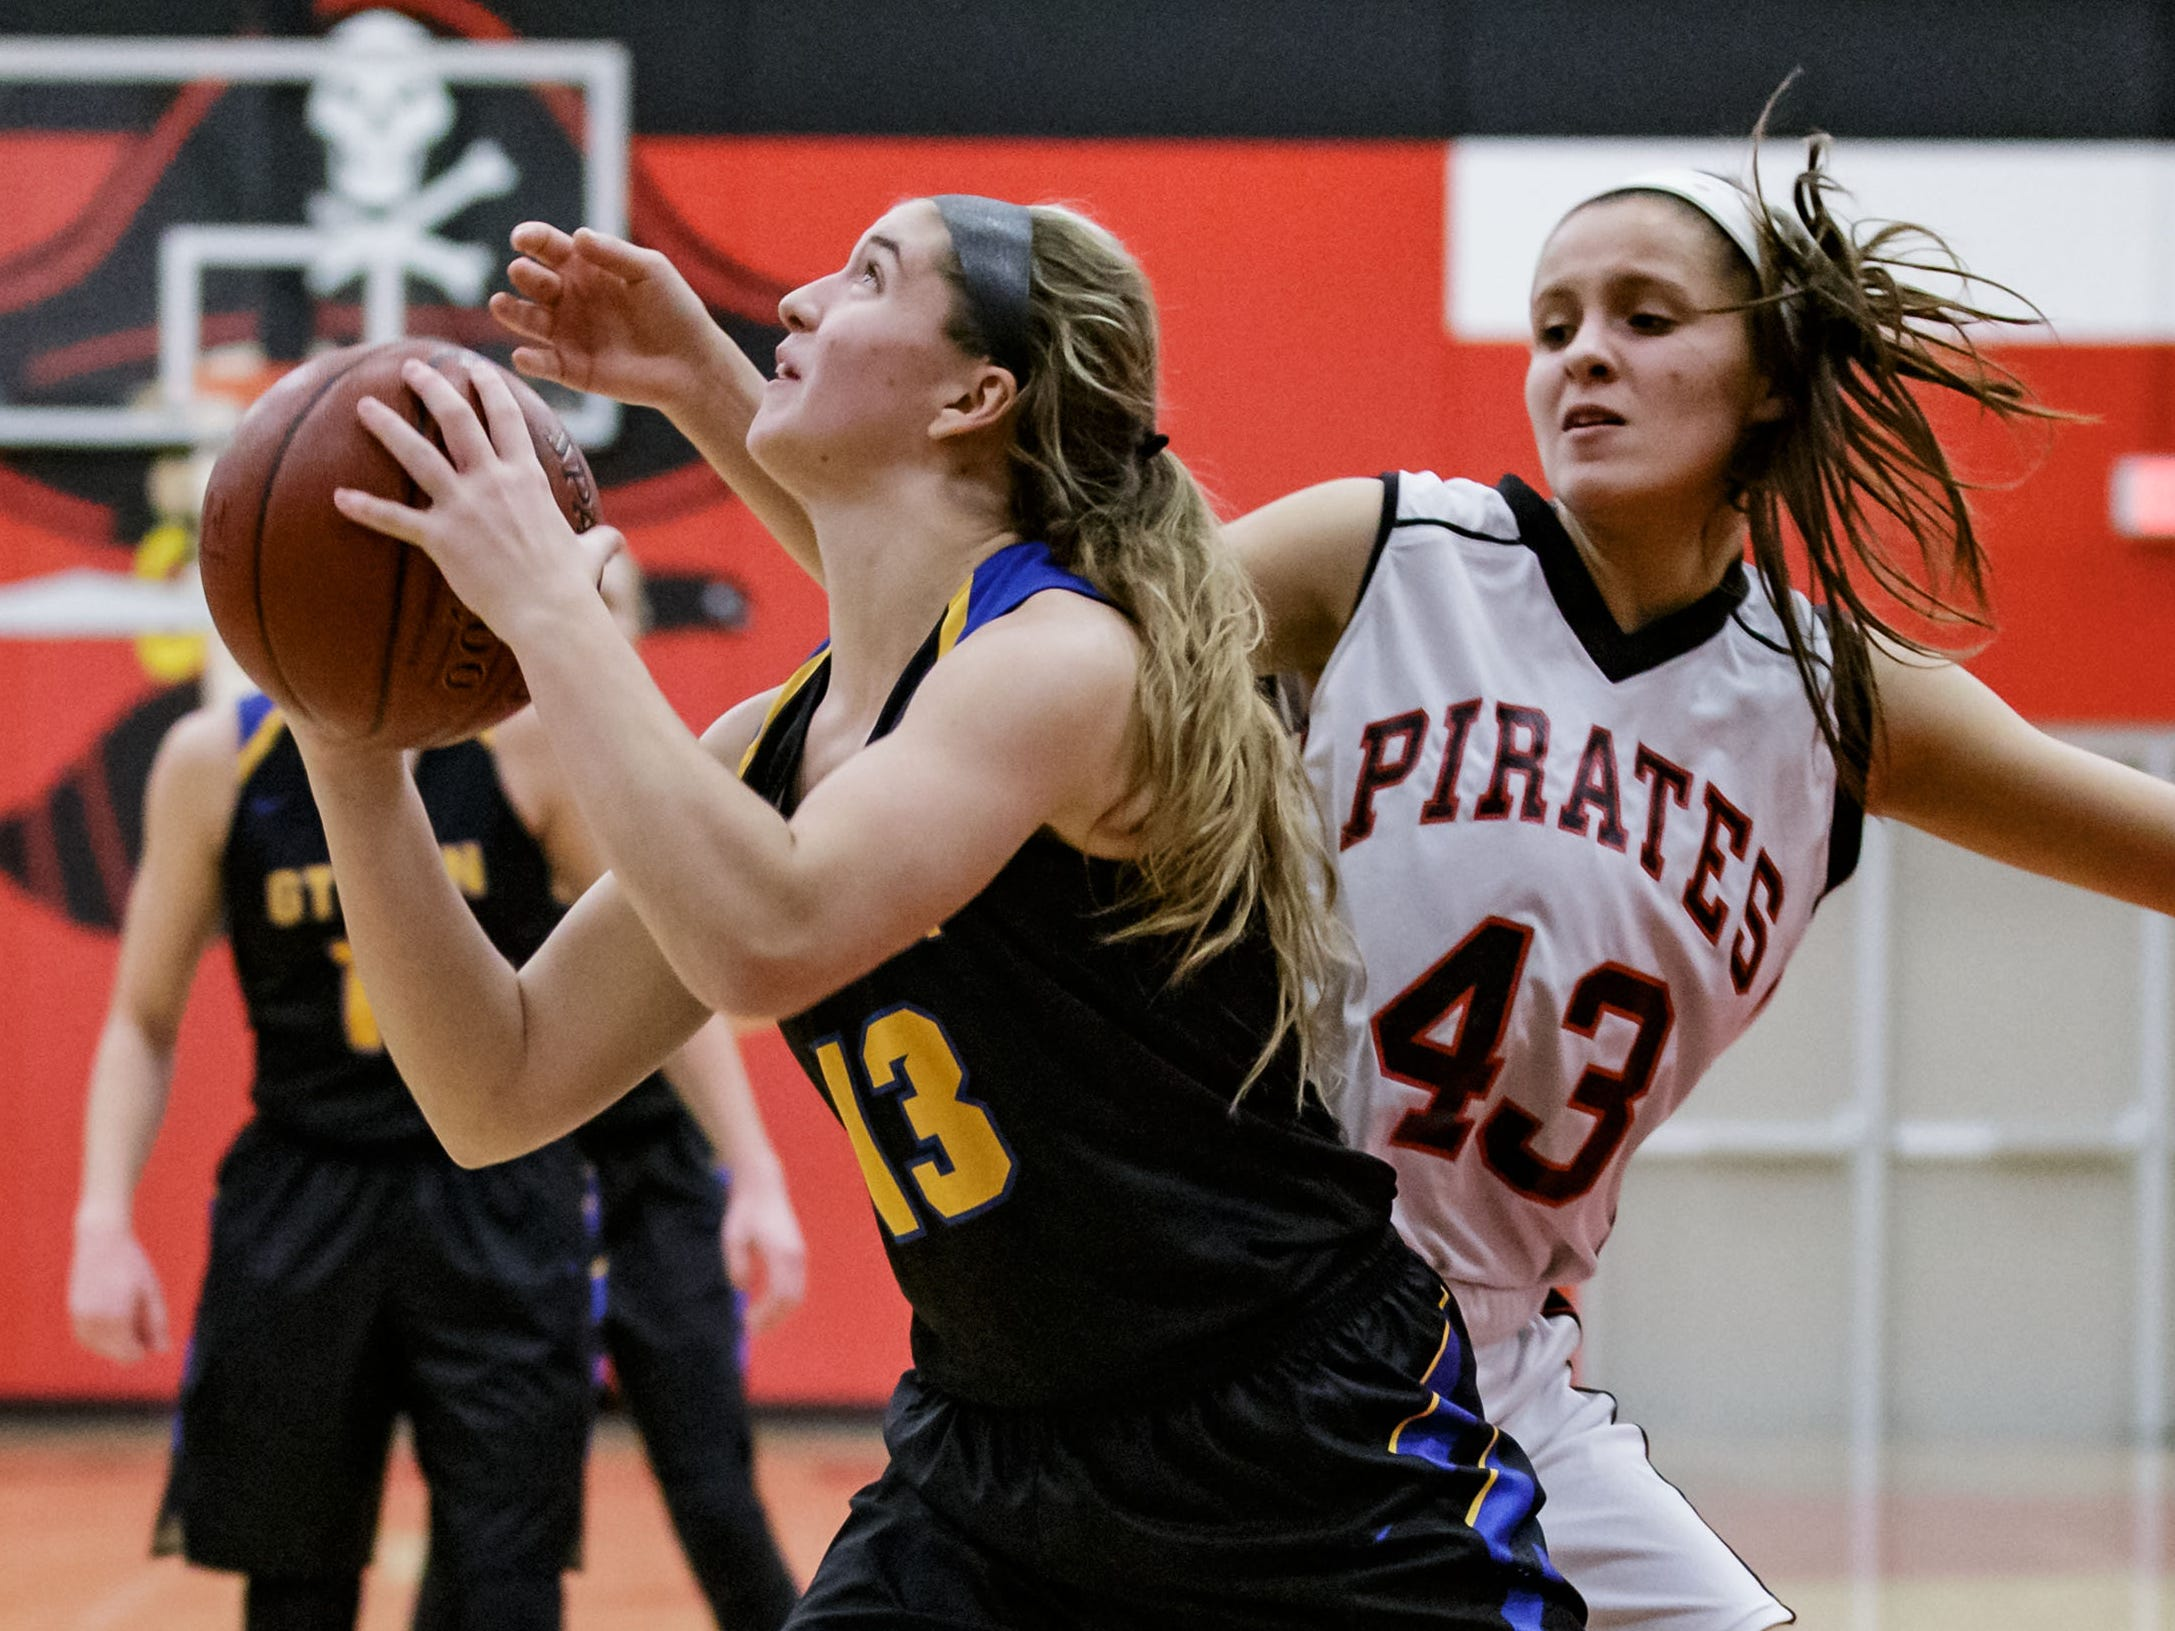 Germantown sophomore Natalie Palzkill (13) battles past Pewaukee's Ellie Reyes (43) during the game at Pewaukee on Tuesday, Nov. 27, 2018.